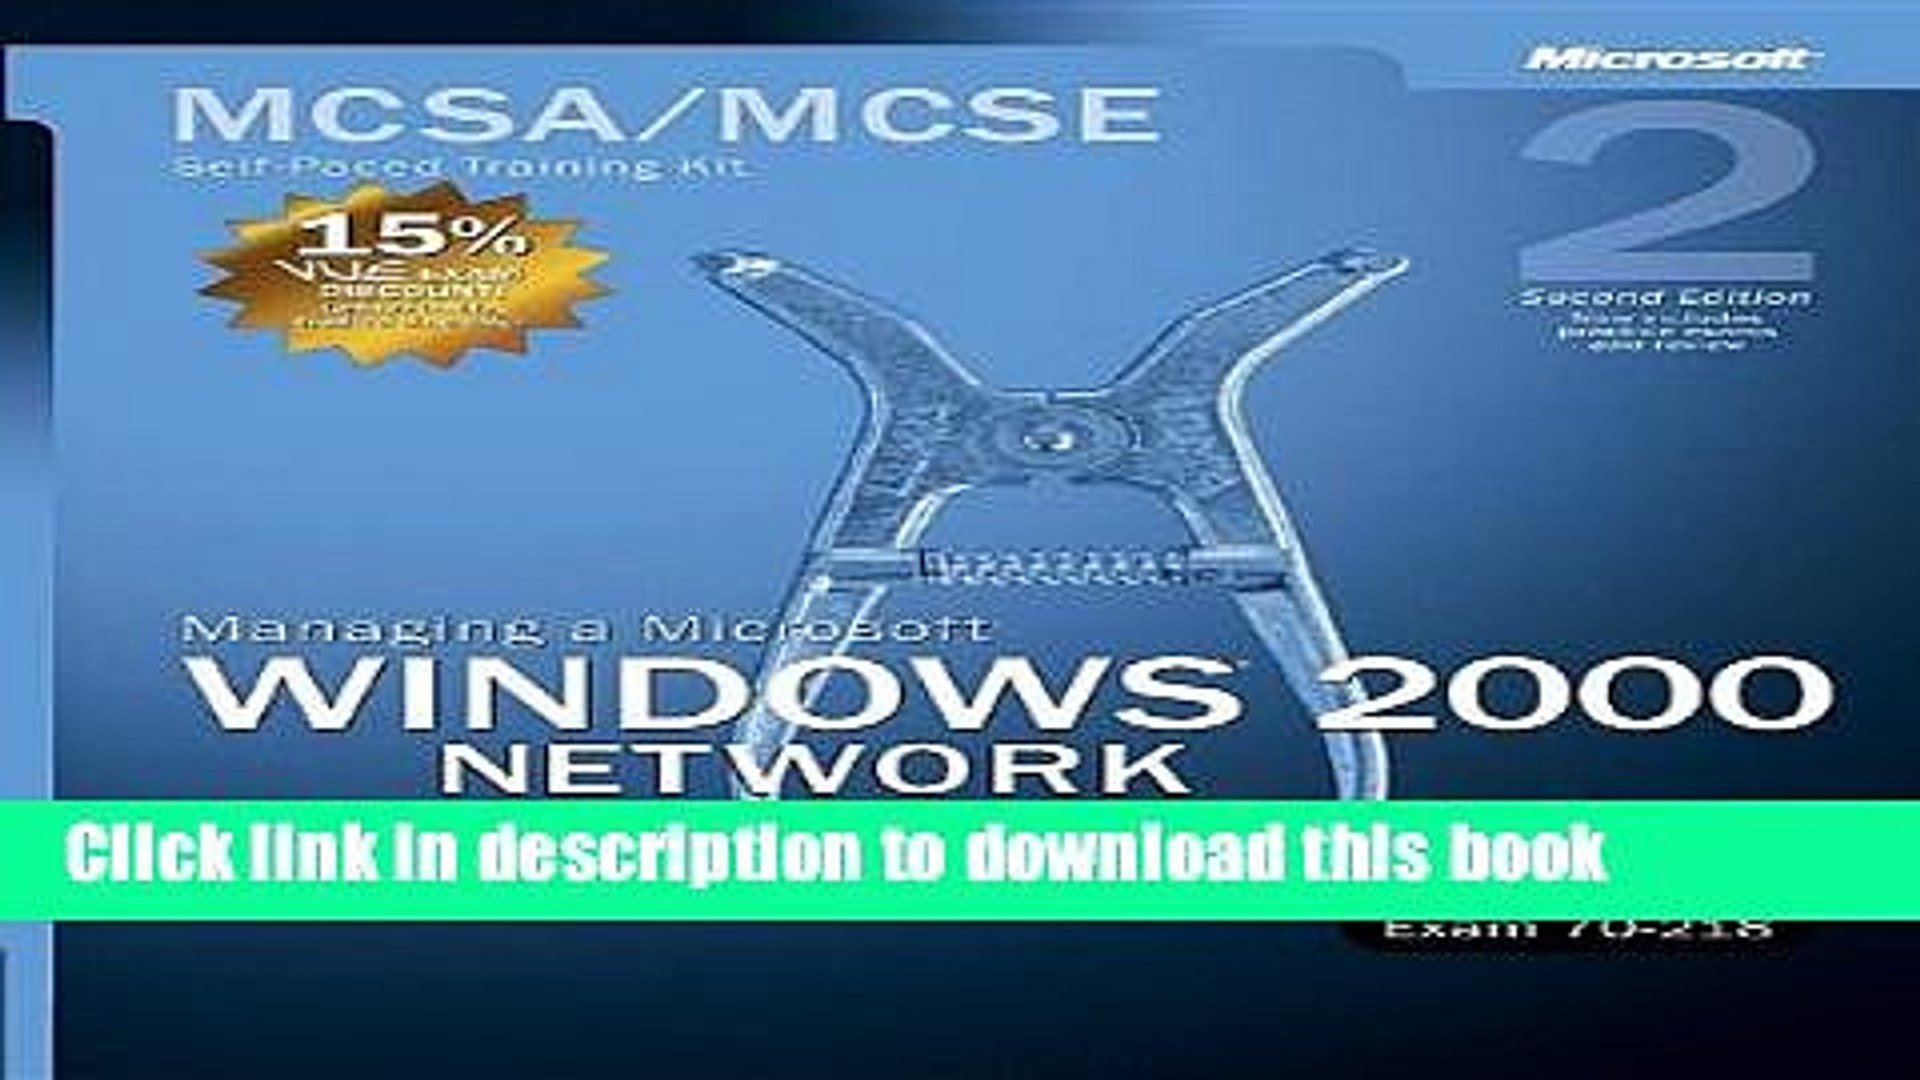 Read MCSA/MCSE Self-Paced Training Kit (Exam 70-218): Managing a Microsoft Windows 2000 Network